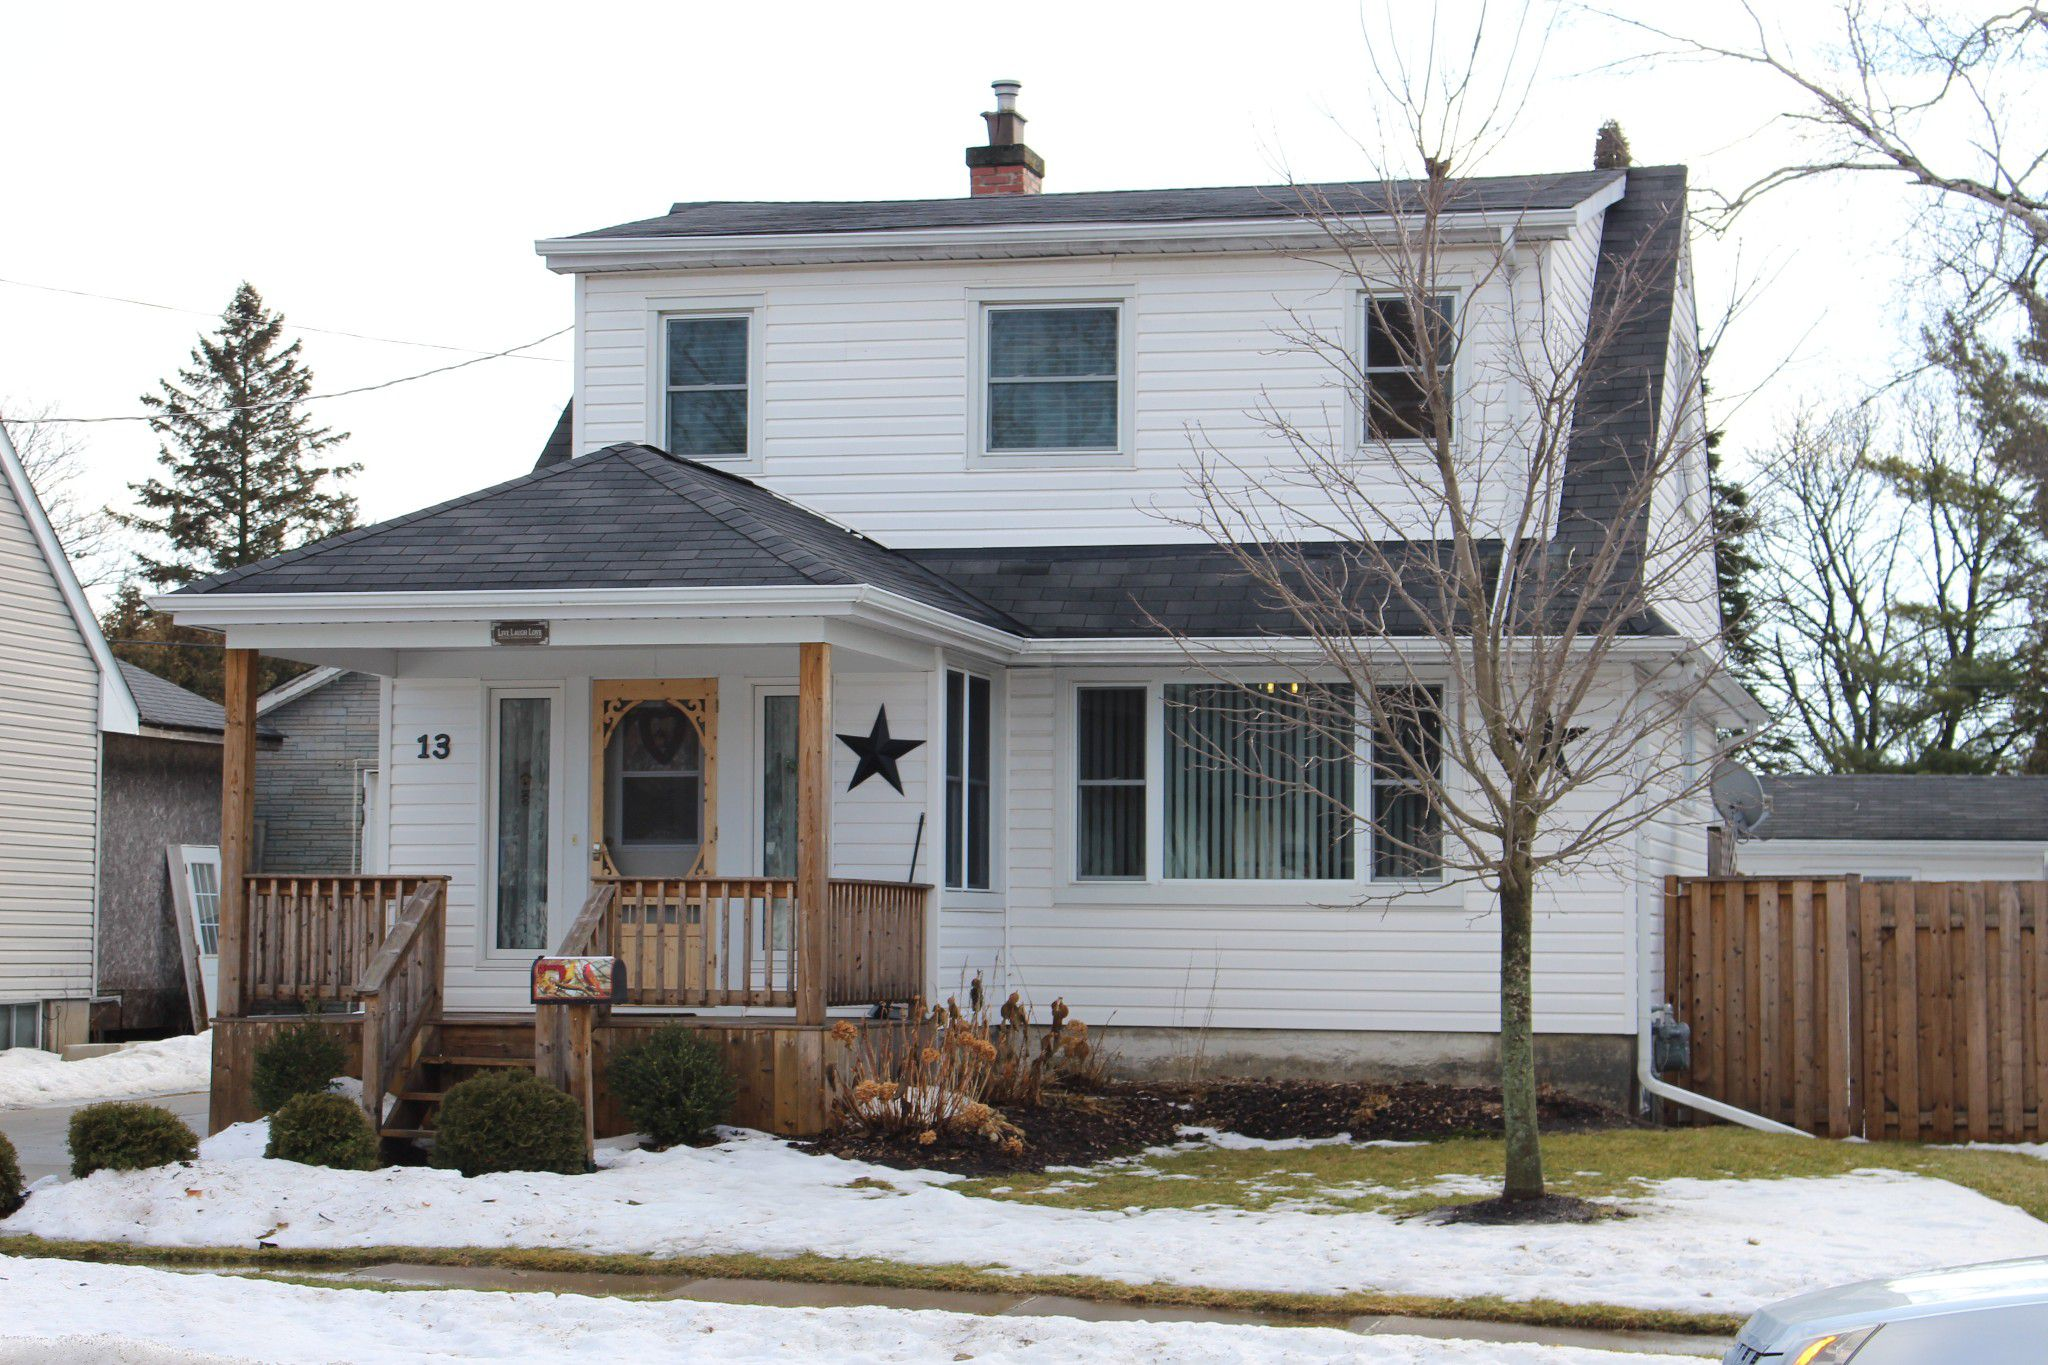 Main Photo: 13 Arthur Street in Port Hope: Residential Detached for sale : MLS®# 510670102